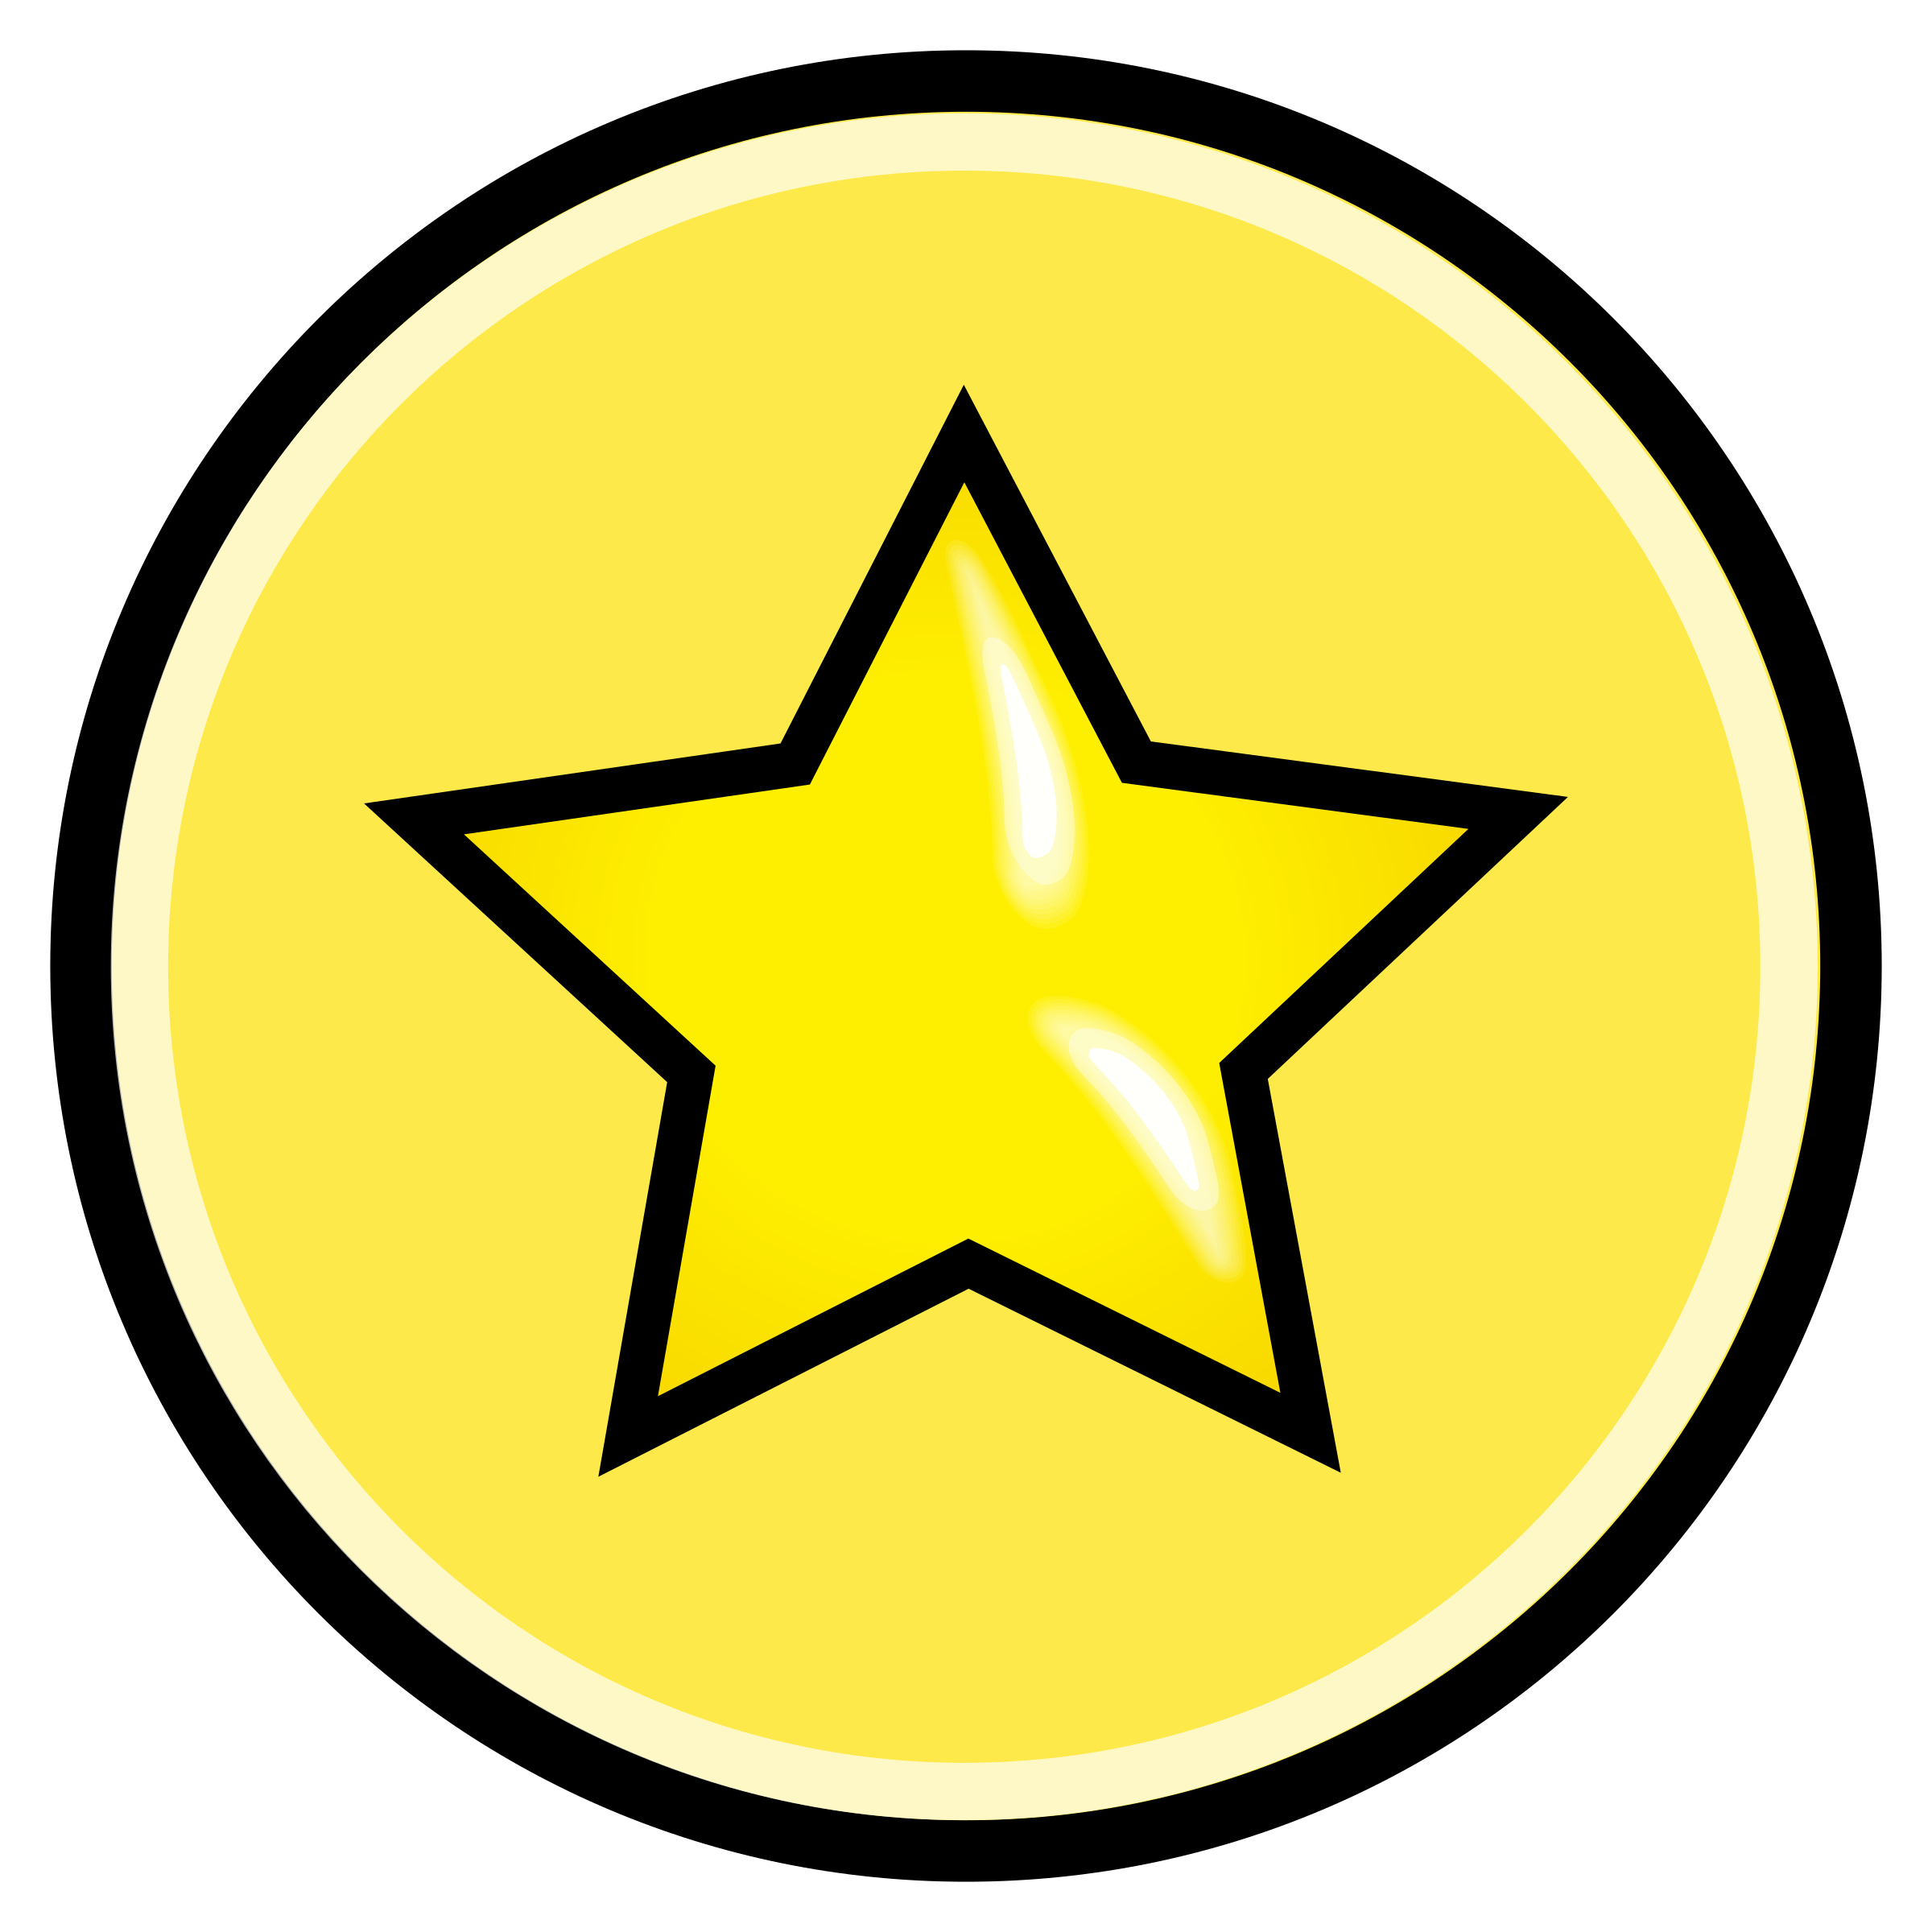 button-with-yellow-star-vector-clipart